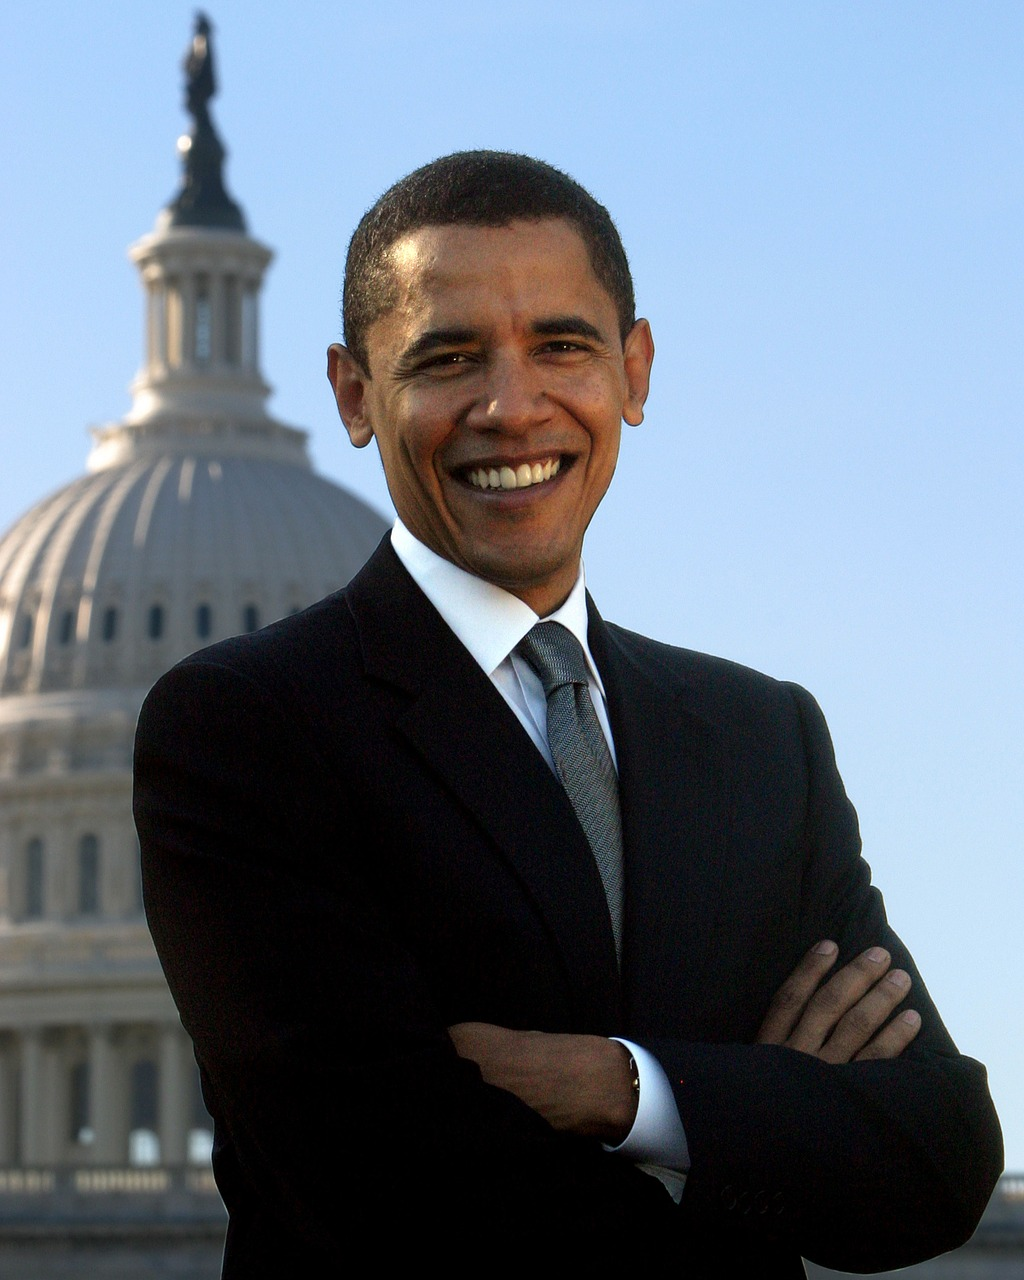 barack hussein obama president usa free photo